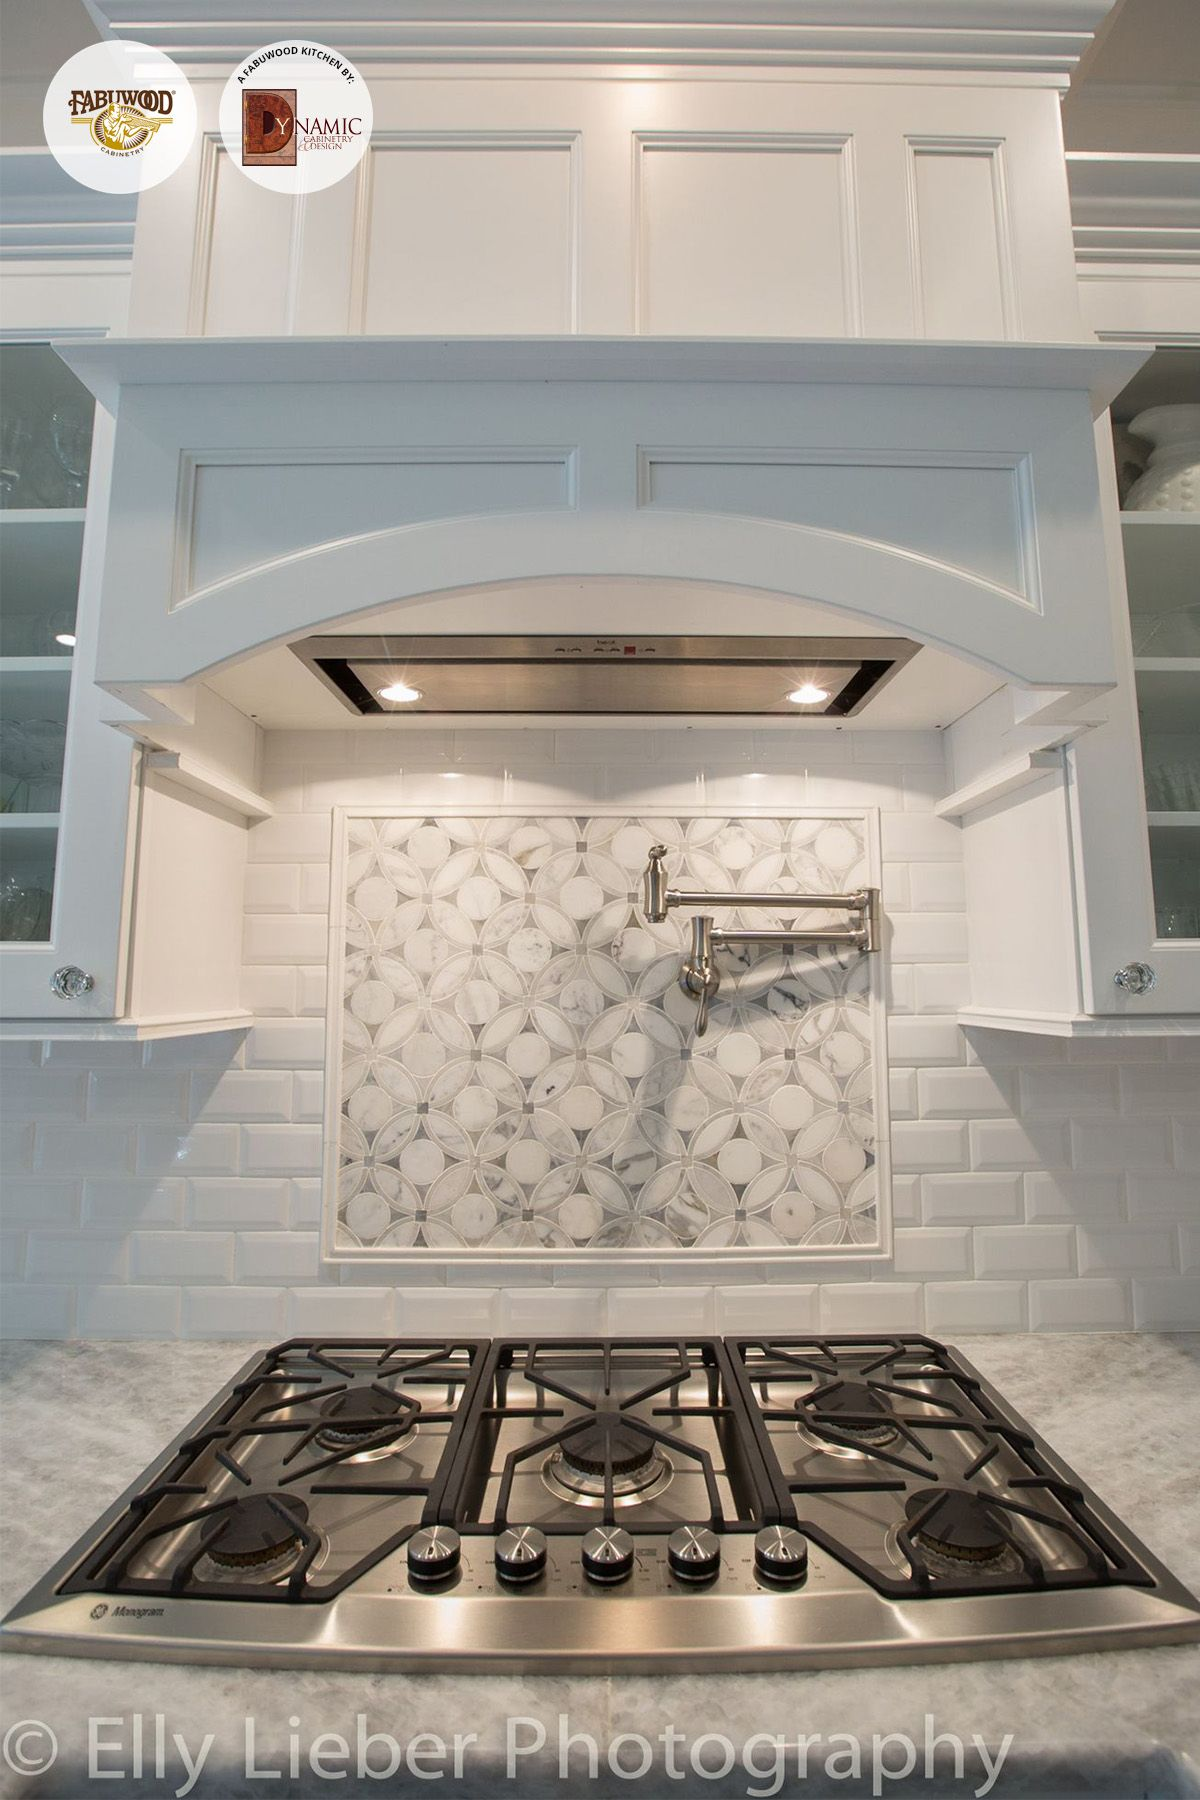 10x10 Grow Room Design: A Lovely Back Splash And Beauty Surrounds In This Amazing